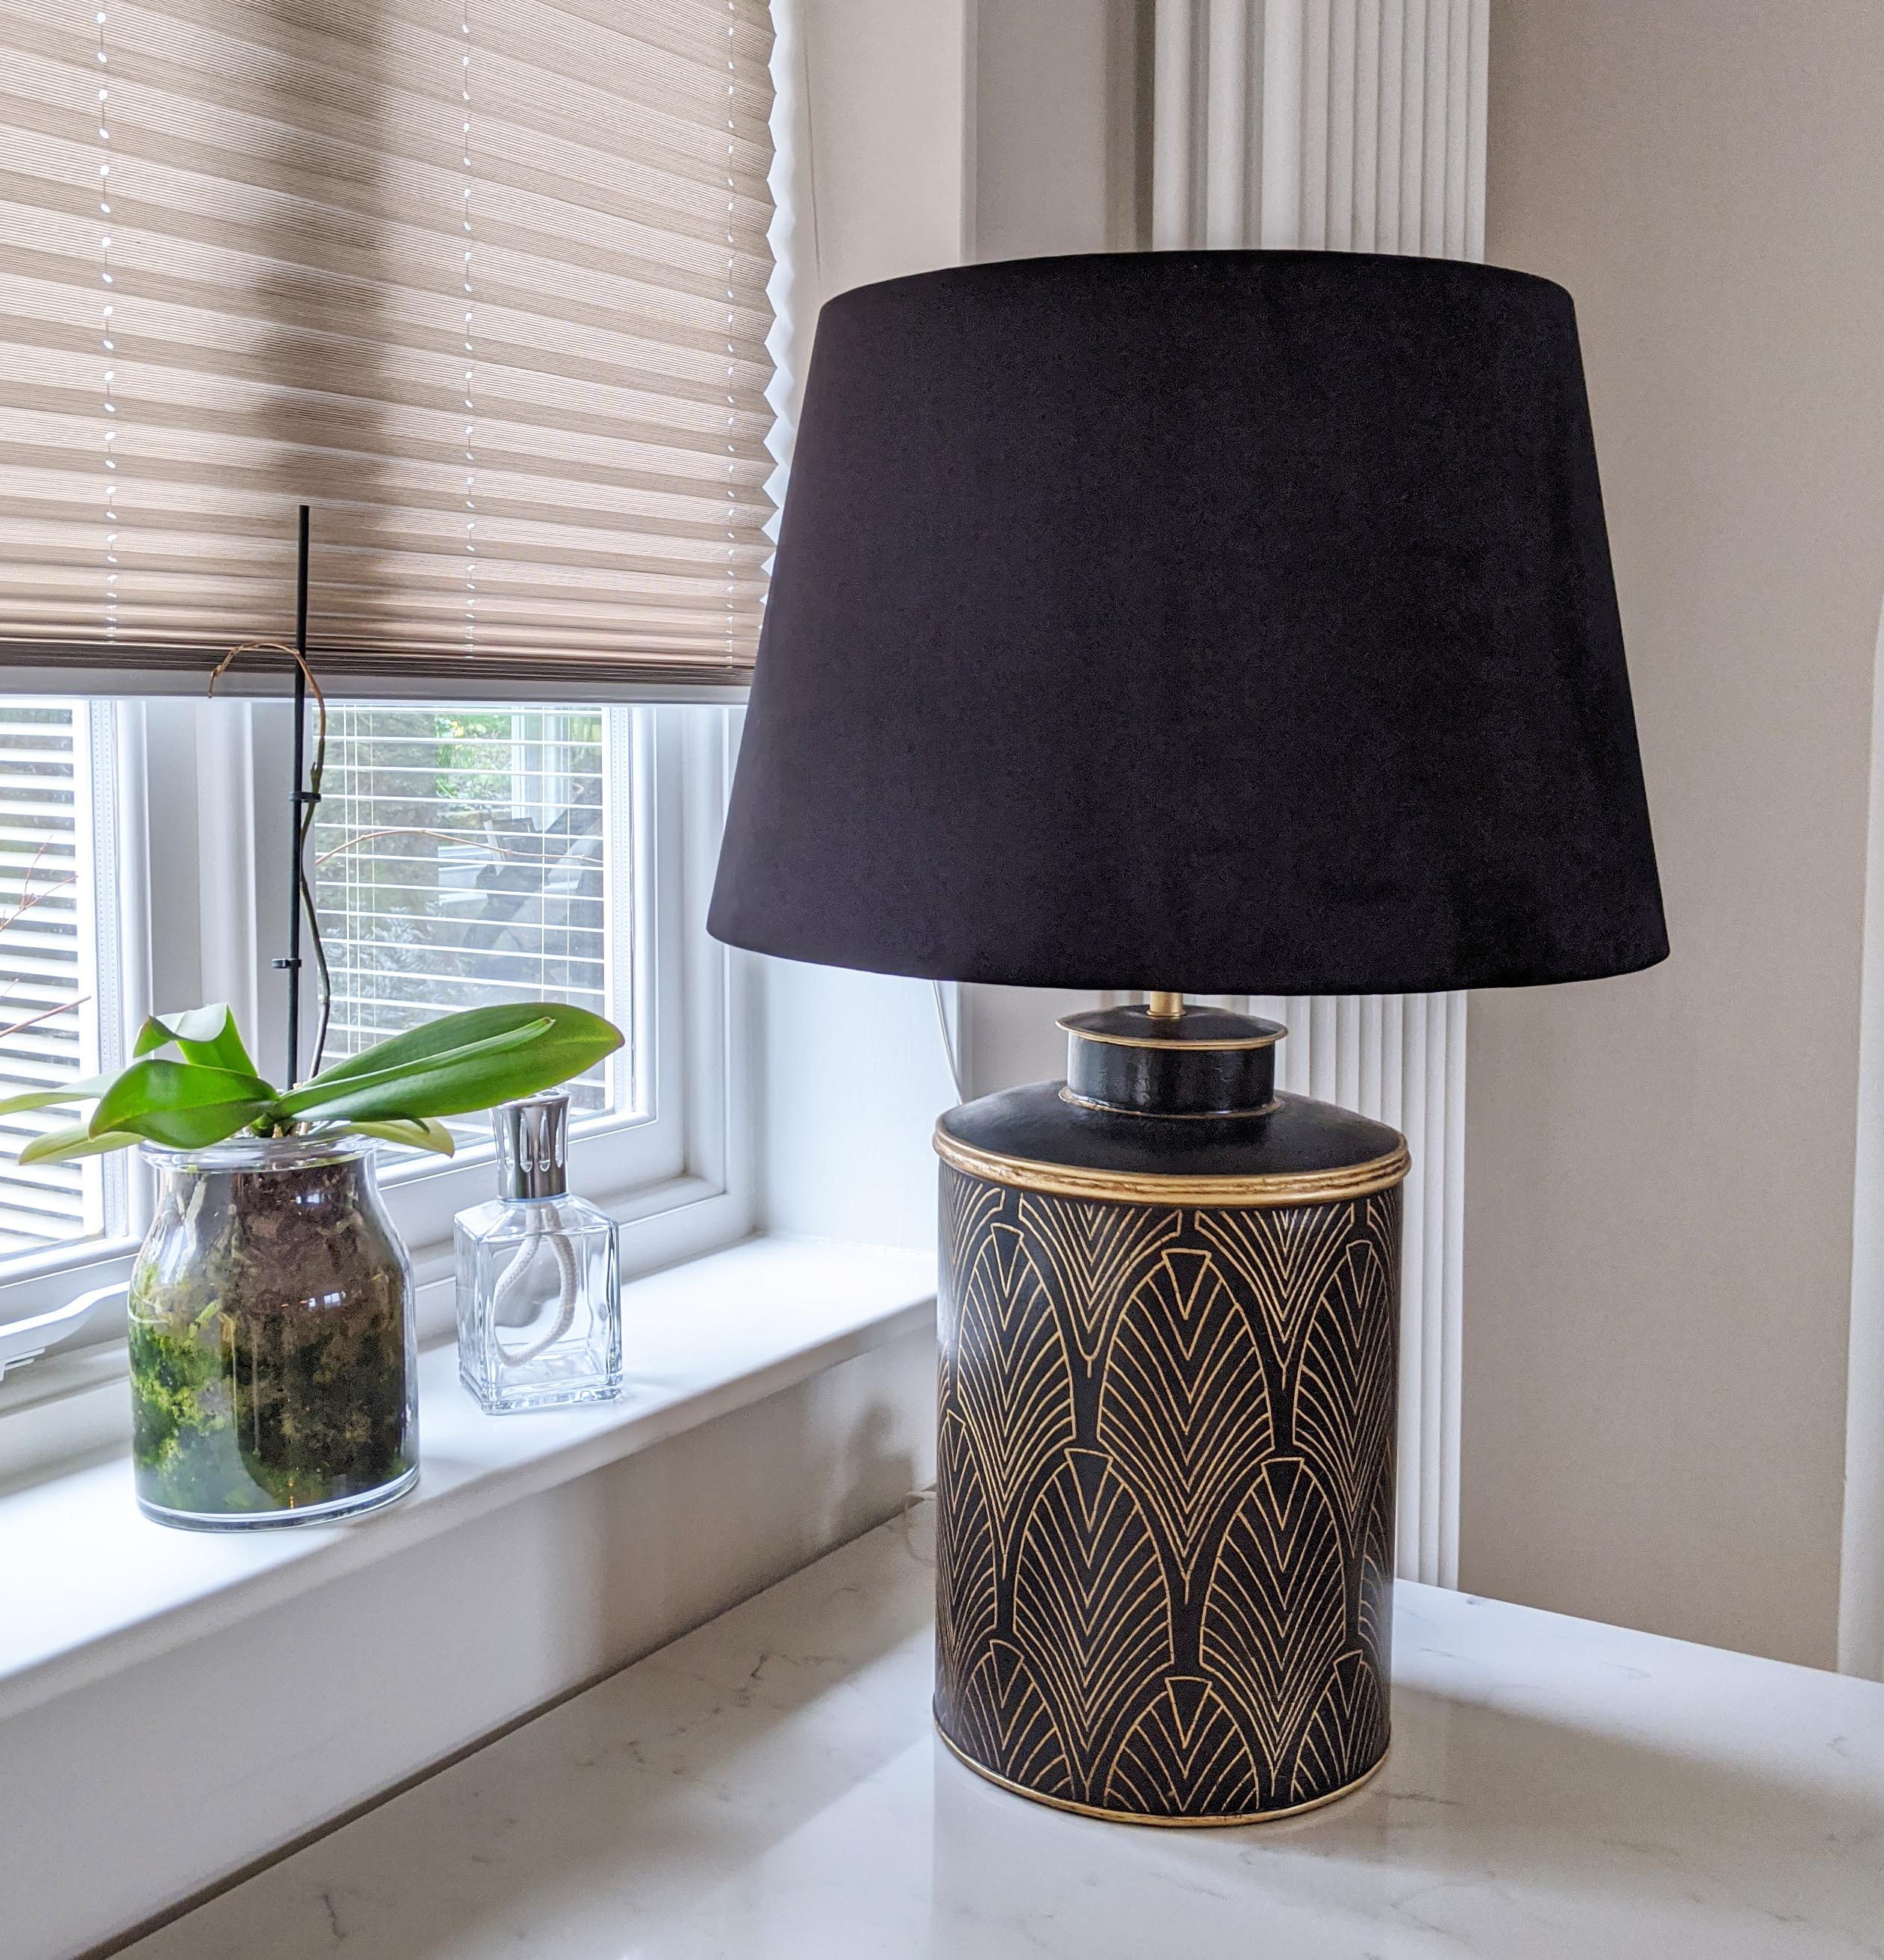 Large Black Art Deco Table Lamp with Gold Detailing